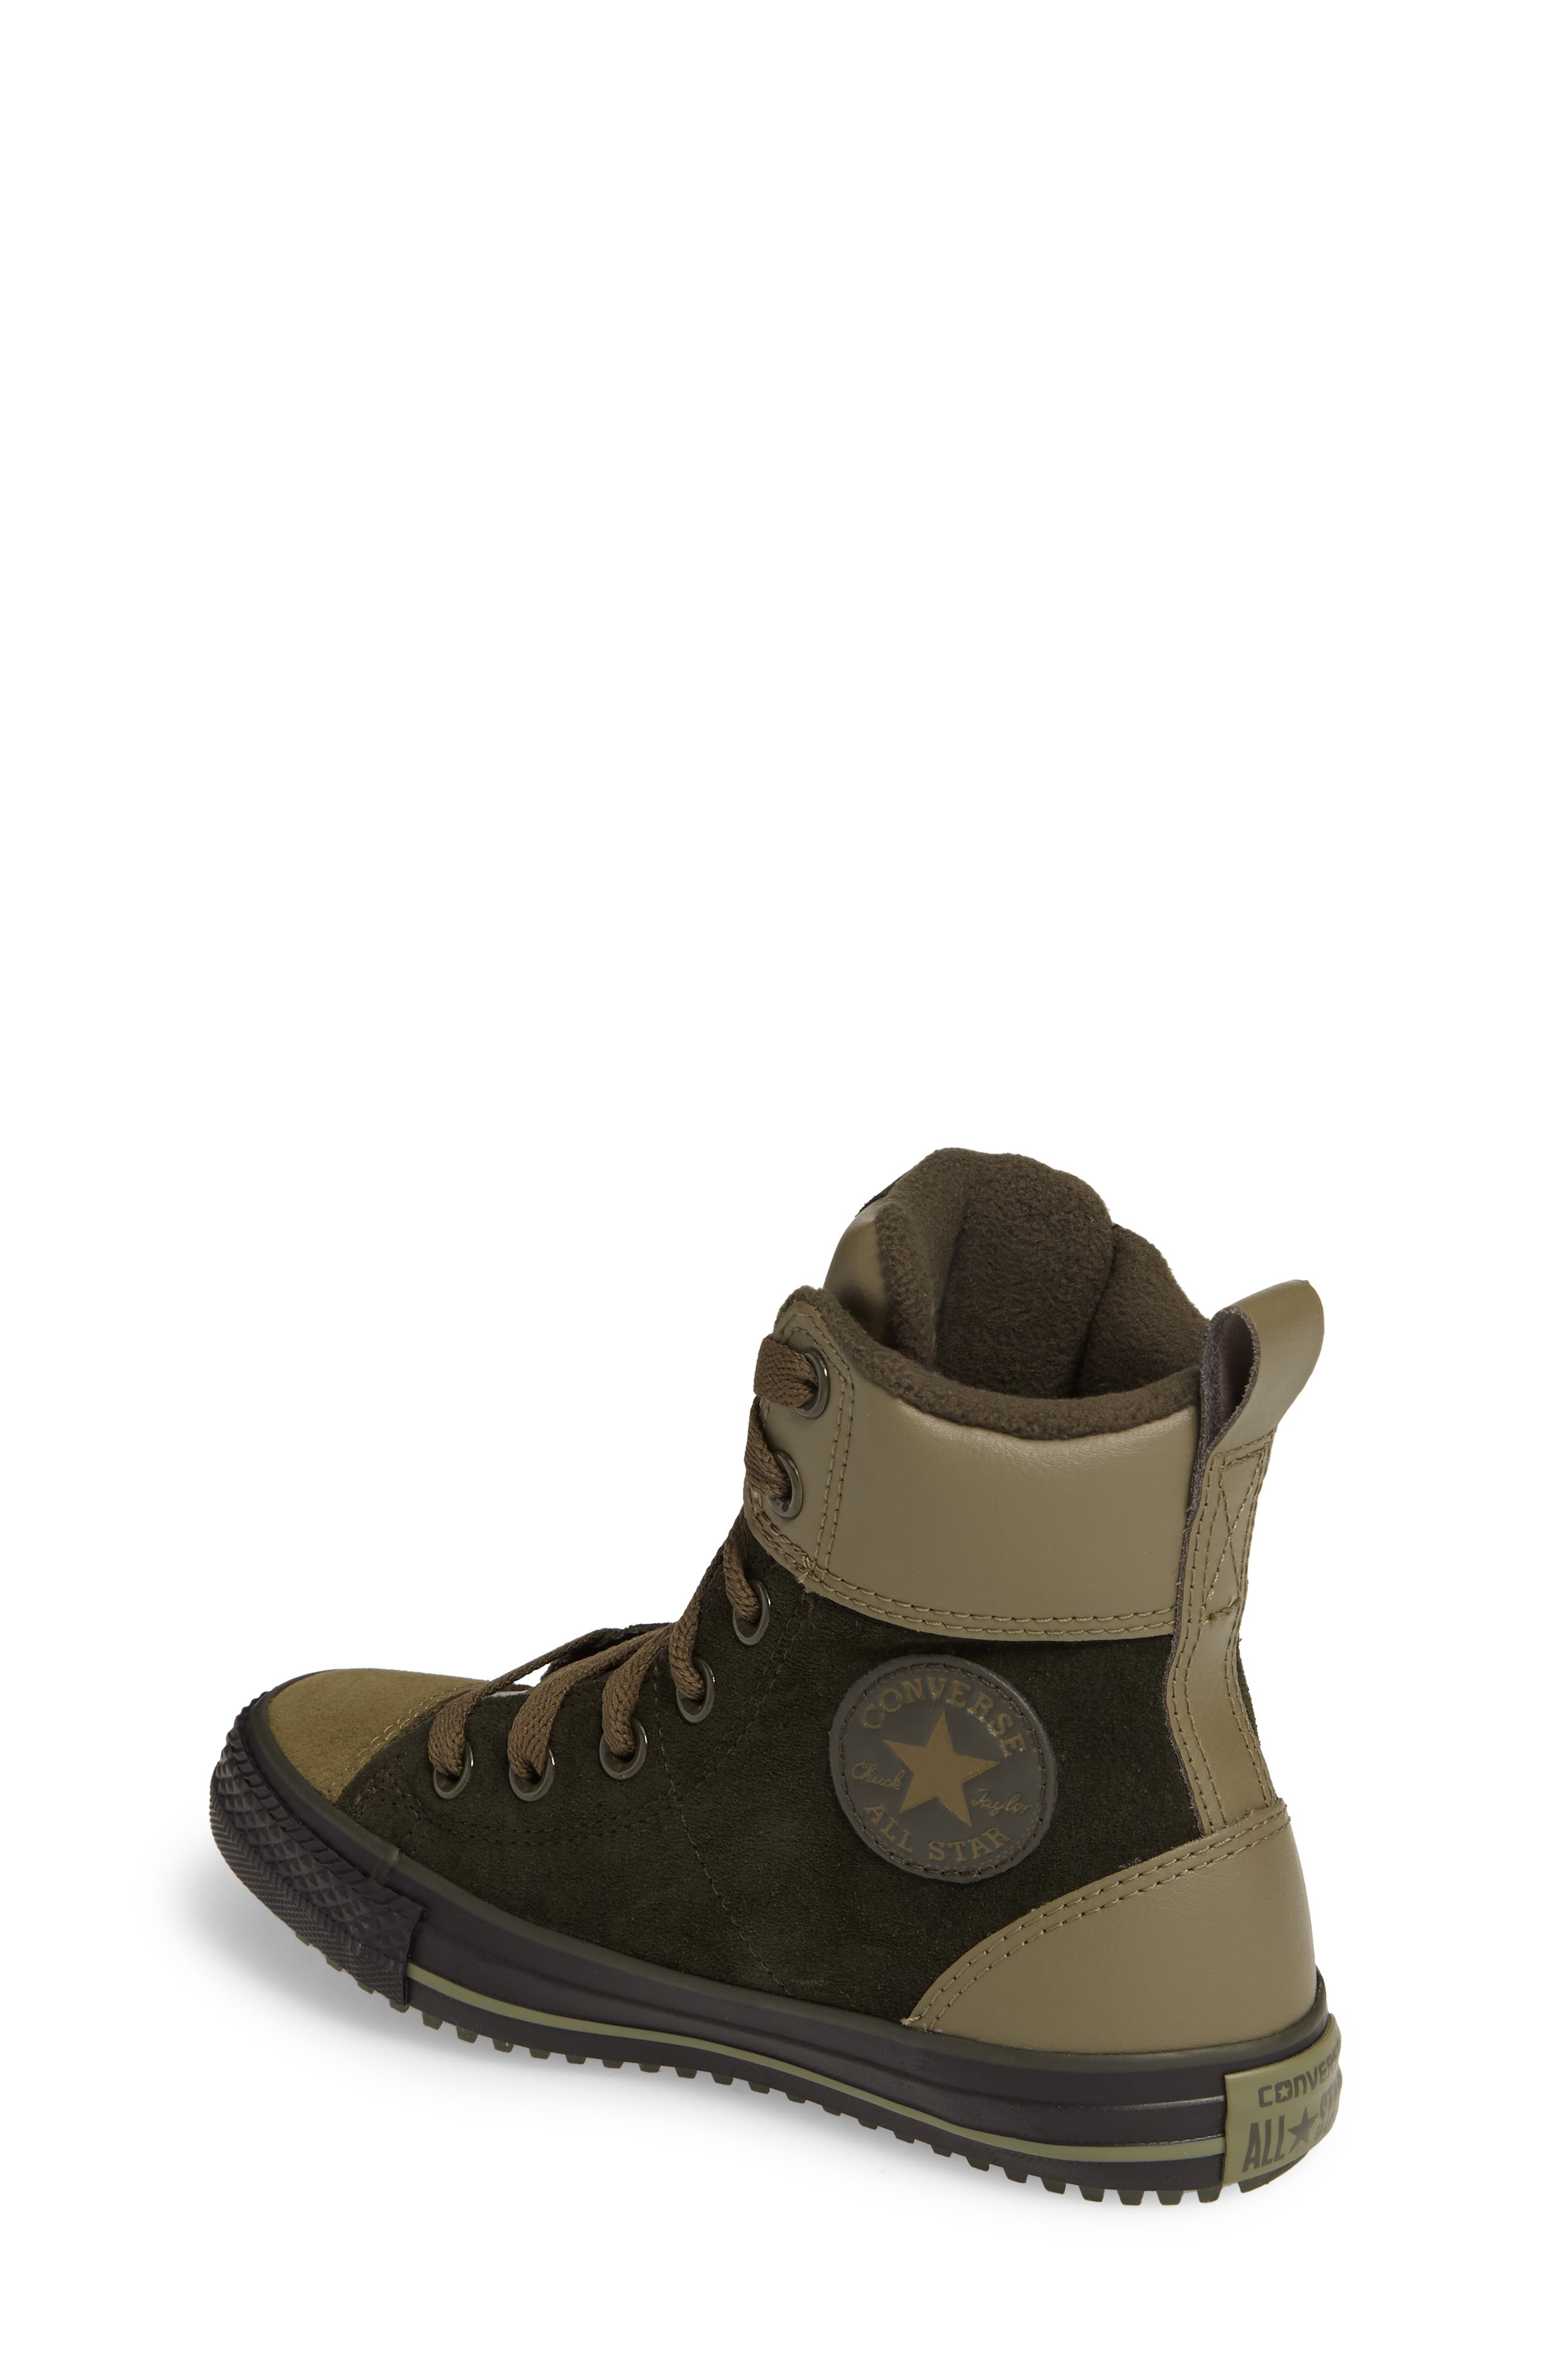 Chuck Taylor<sup>®</sup> All Star<sup>®</sup> Asphalt Sneaker Boot,                             Alternate thumbnail 2, color,                             Sequoia